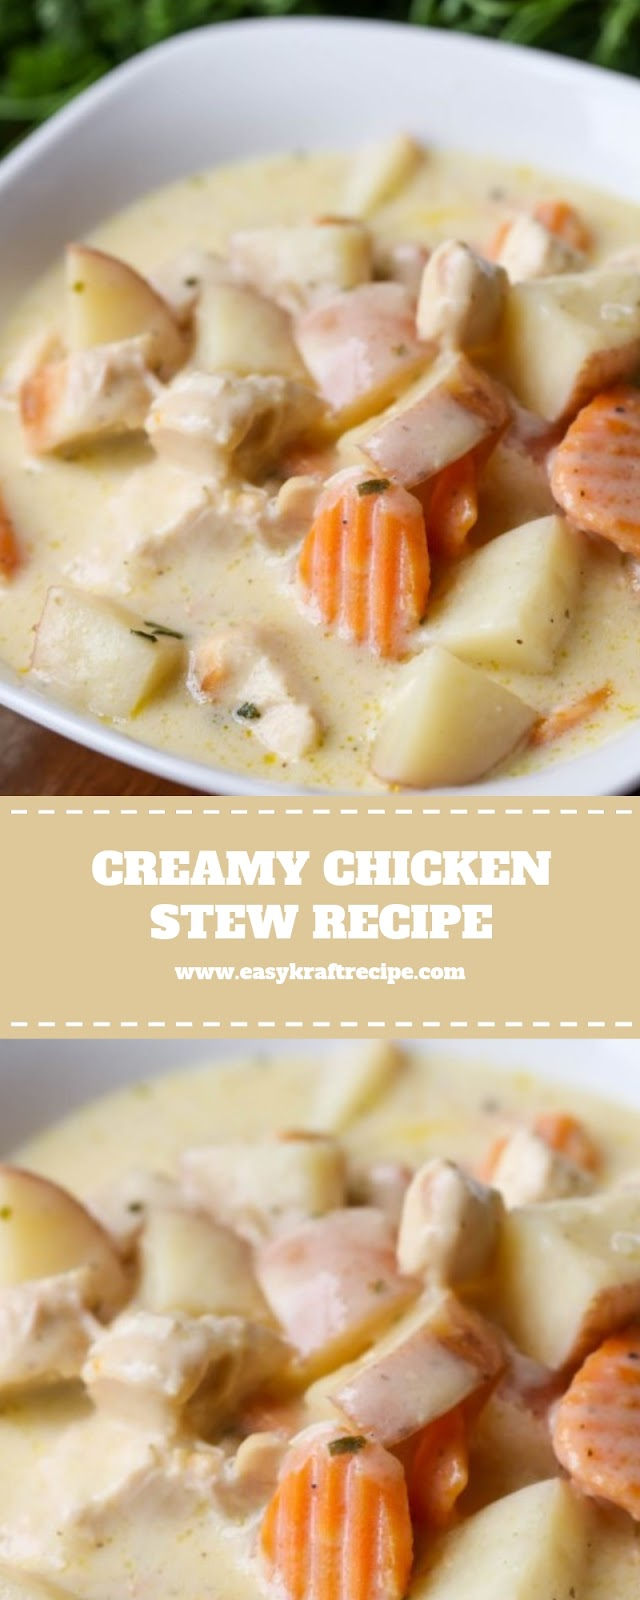 CREAMY CHICKEN STEW RECIPE